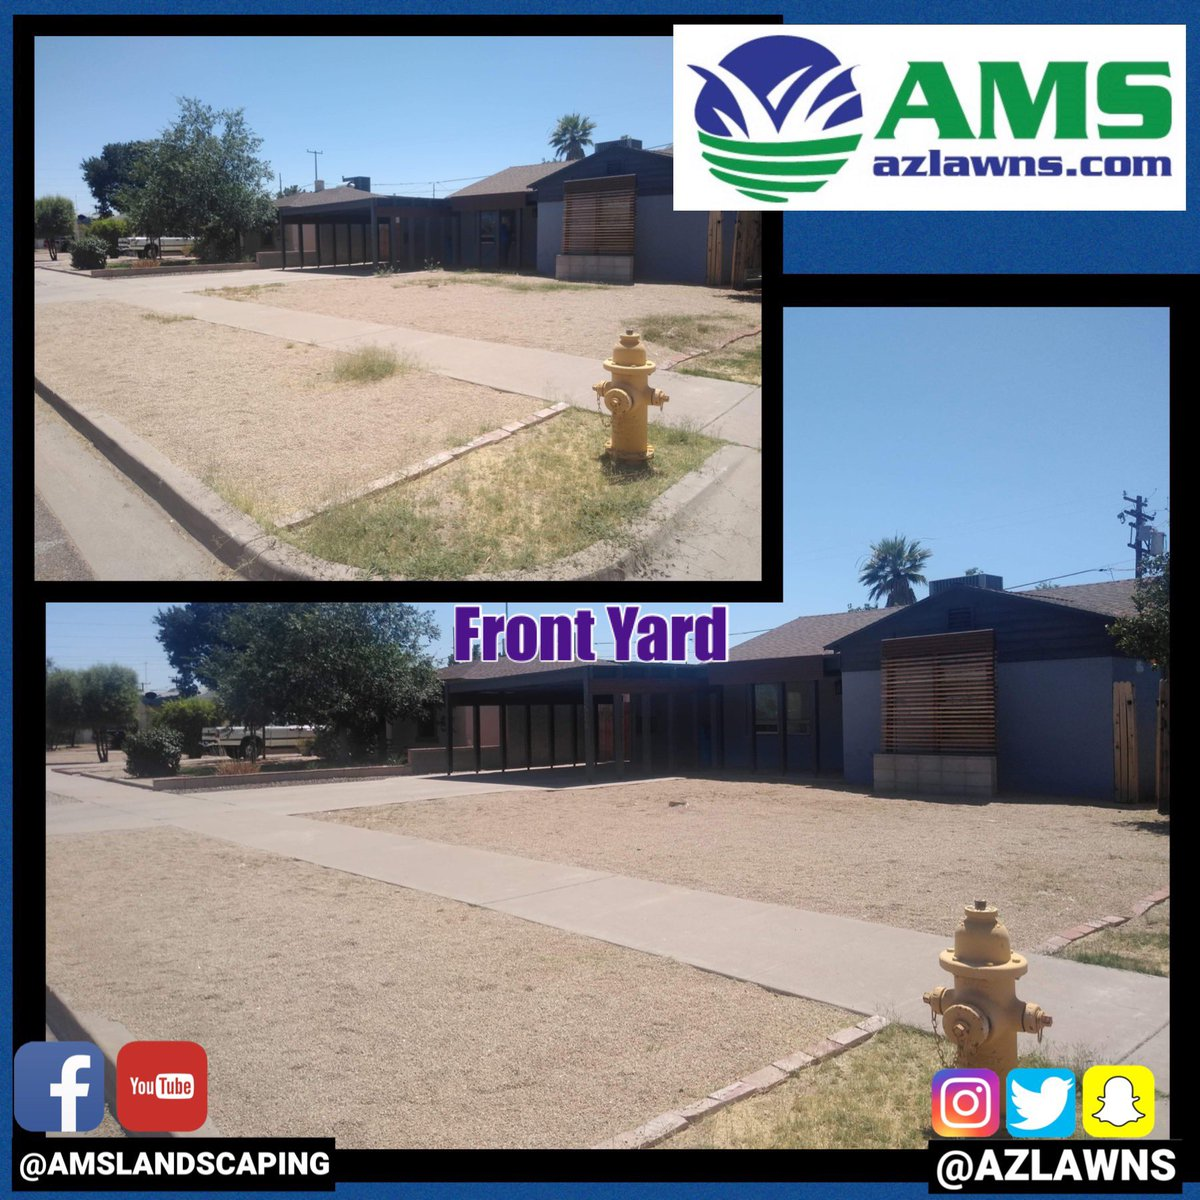 Before and after front yard cleanup. Contact @AMSlandscaping at http://azlawns.com  #beforeandafterpics #cleanup #azlawns #amslandscaping #lawncare #desertlandscaping #landscaping #myyard #azfamily #azcentral #abc15 #fox10phoenix #12newsaz #azrealestate #KeepingYardsEnjoyable